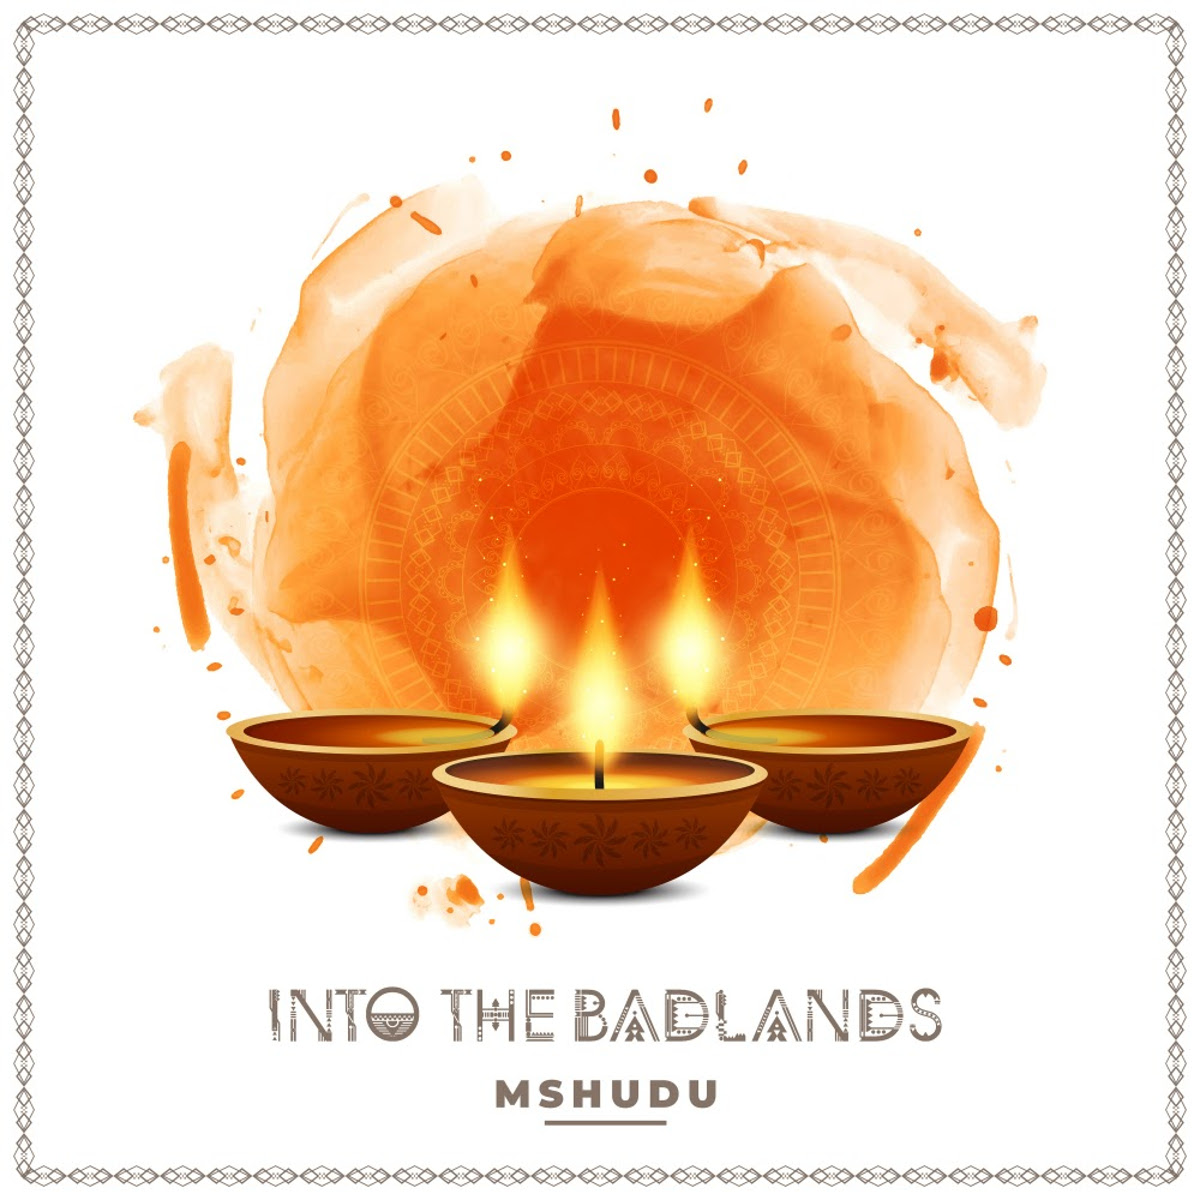 Mshudu Into The Bandlands - EP:Mshudu – Into The Bandlands